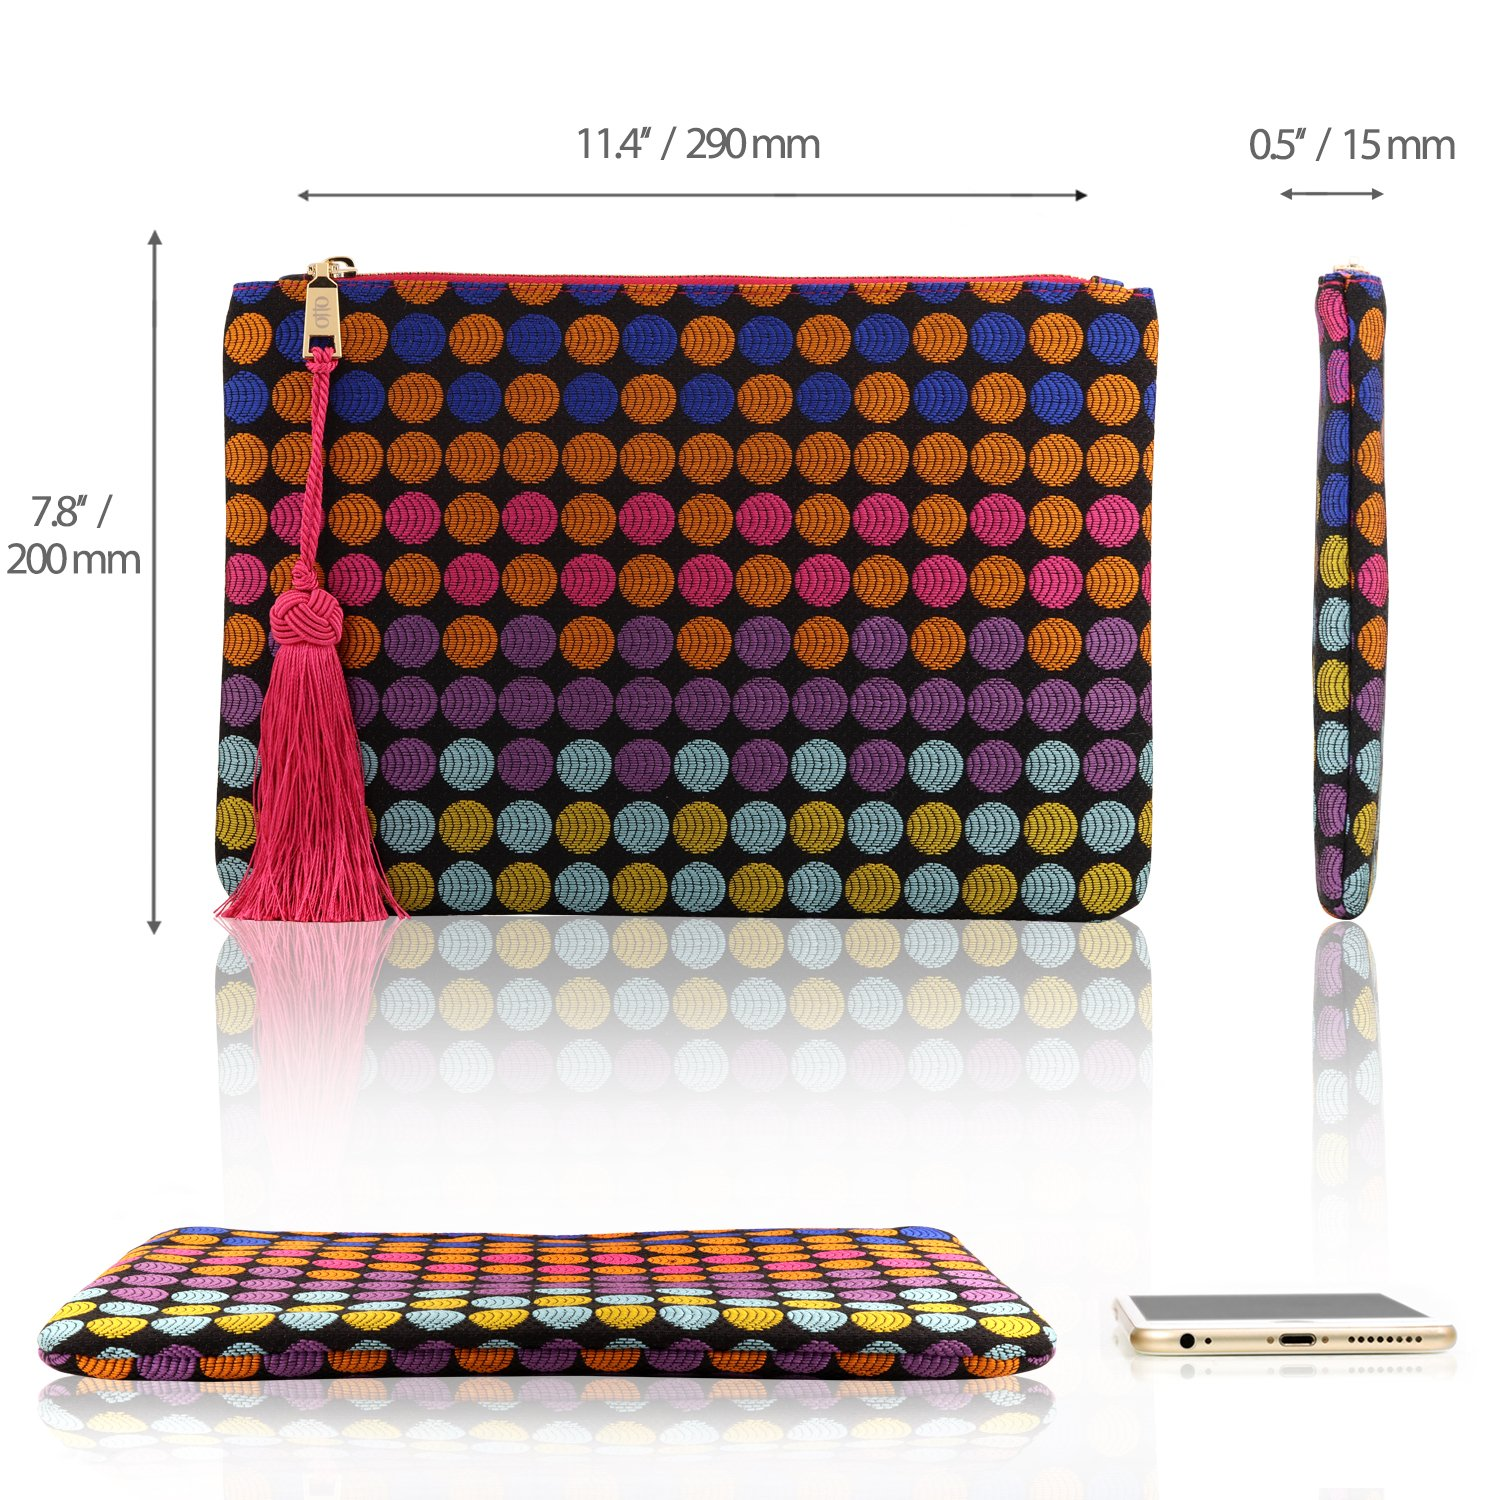 Otto Designer Women's Bohemian Clutch Purse - Multiple Slots Money, Cards, Smartphone - Ultra Slim (Dots) by OTTO Leather (Image #2)